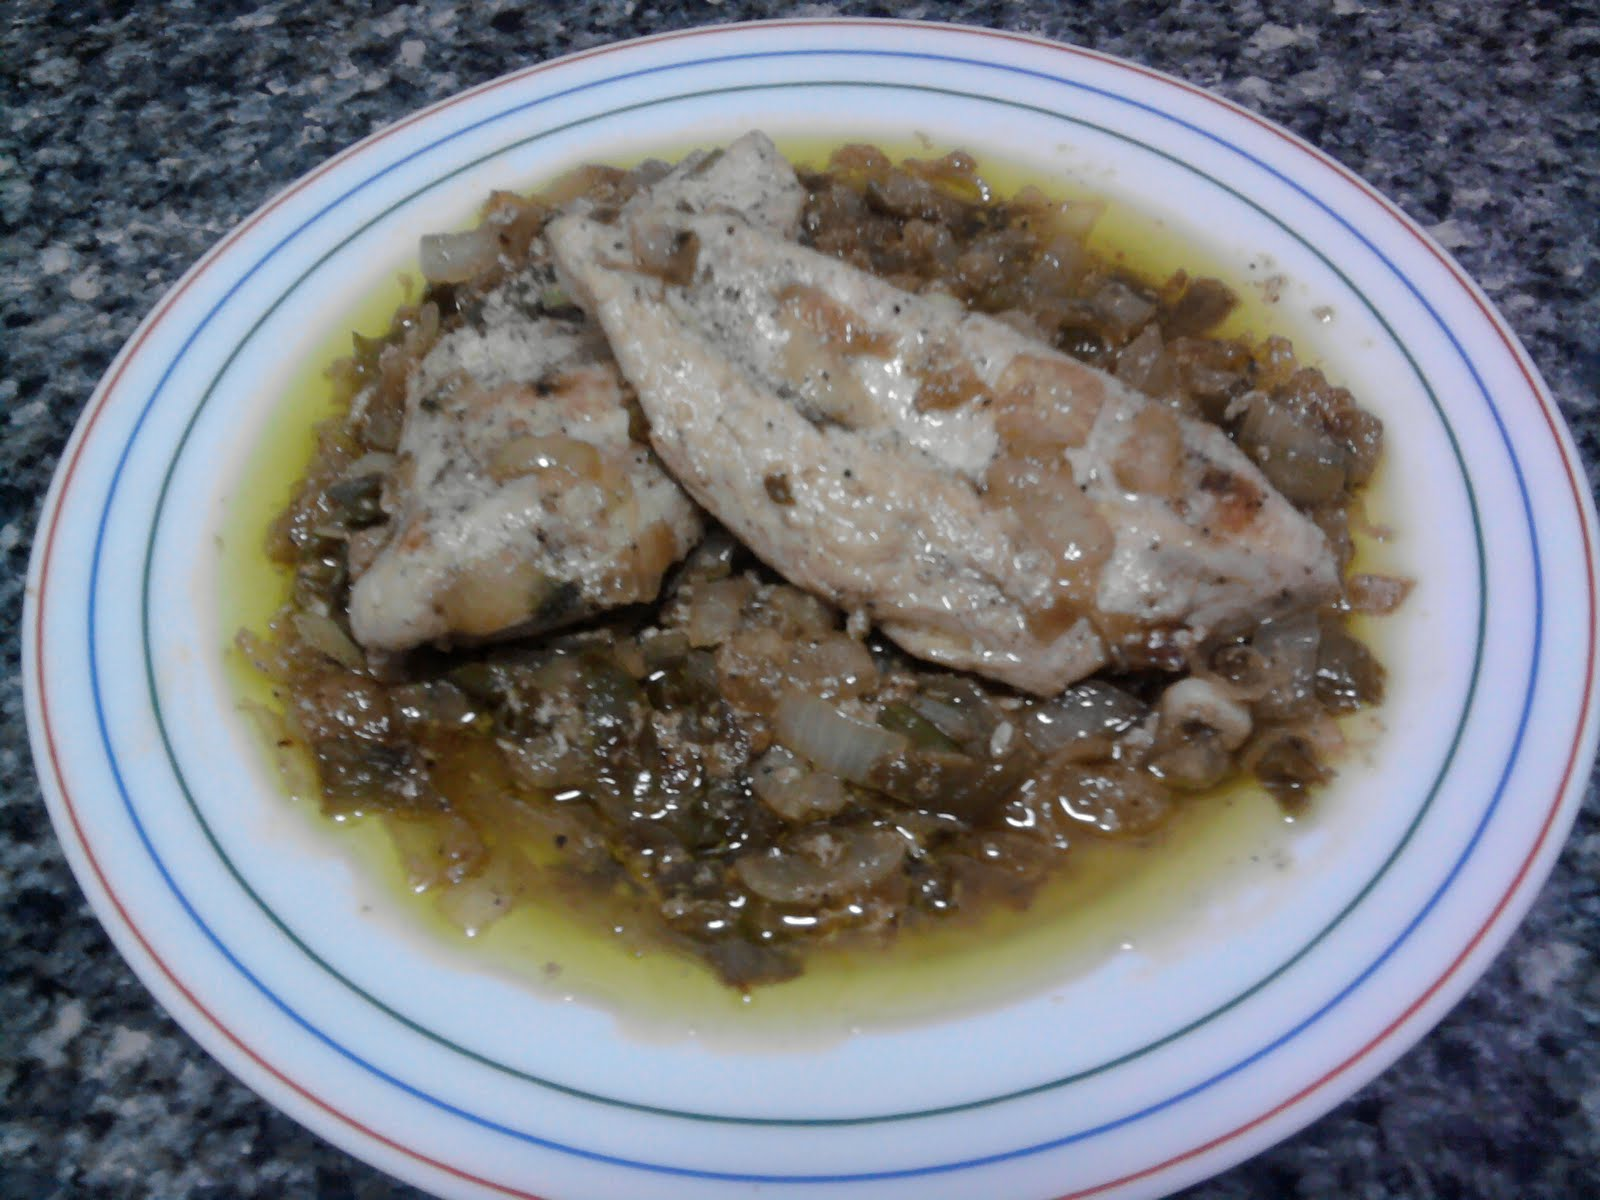 Filete de pollo con vino blanco